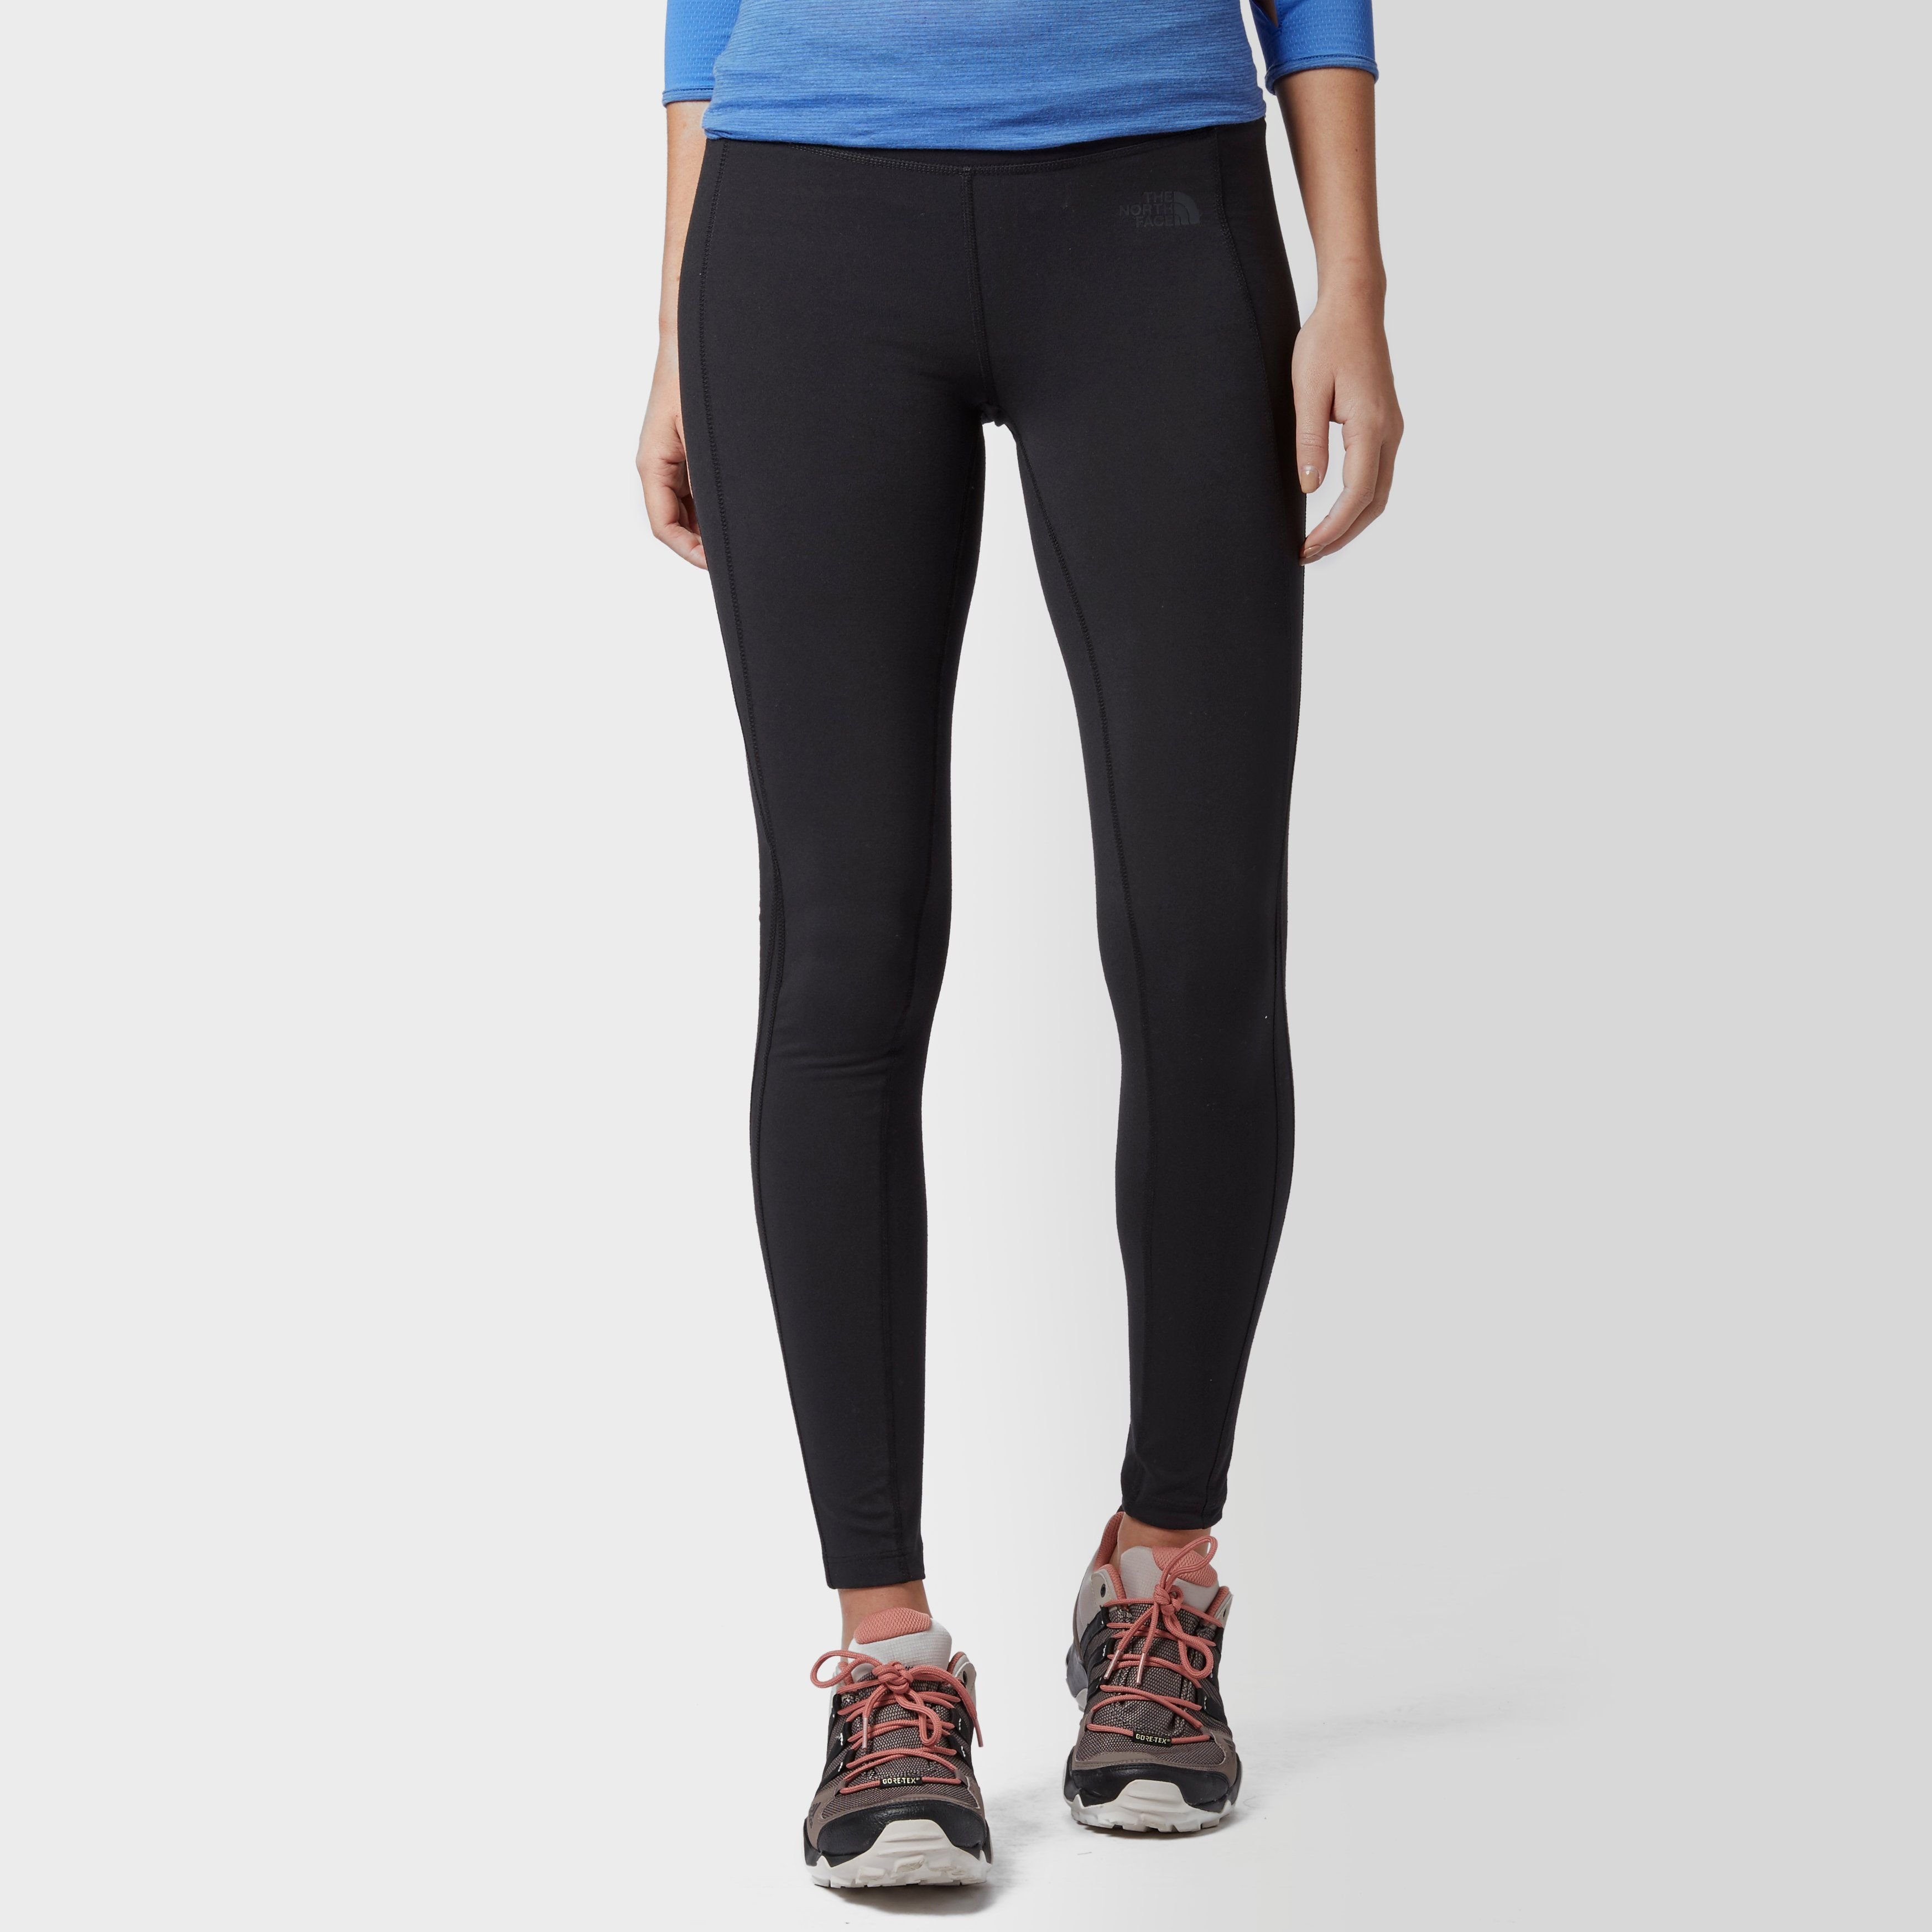 THE NORTH FACE Women's Mountain Athletics Pulse Tights